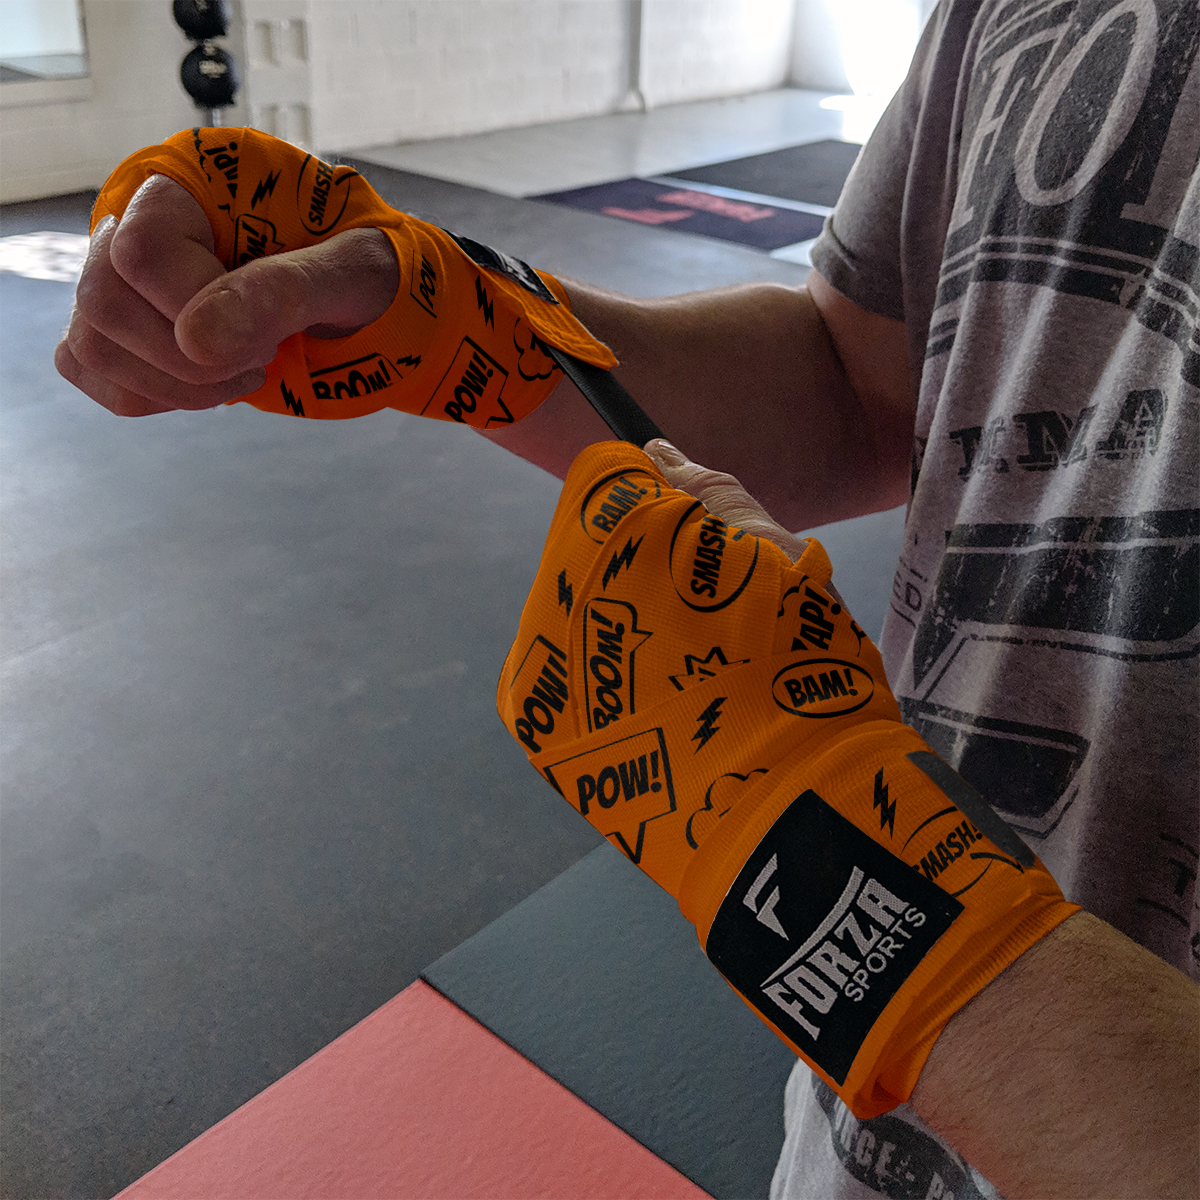 LITE ORANGE MEXICAN STYLE BOXERS WRIST /& HAND WRAPS SUPPORT 2.5m KIDS /& ADULT